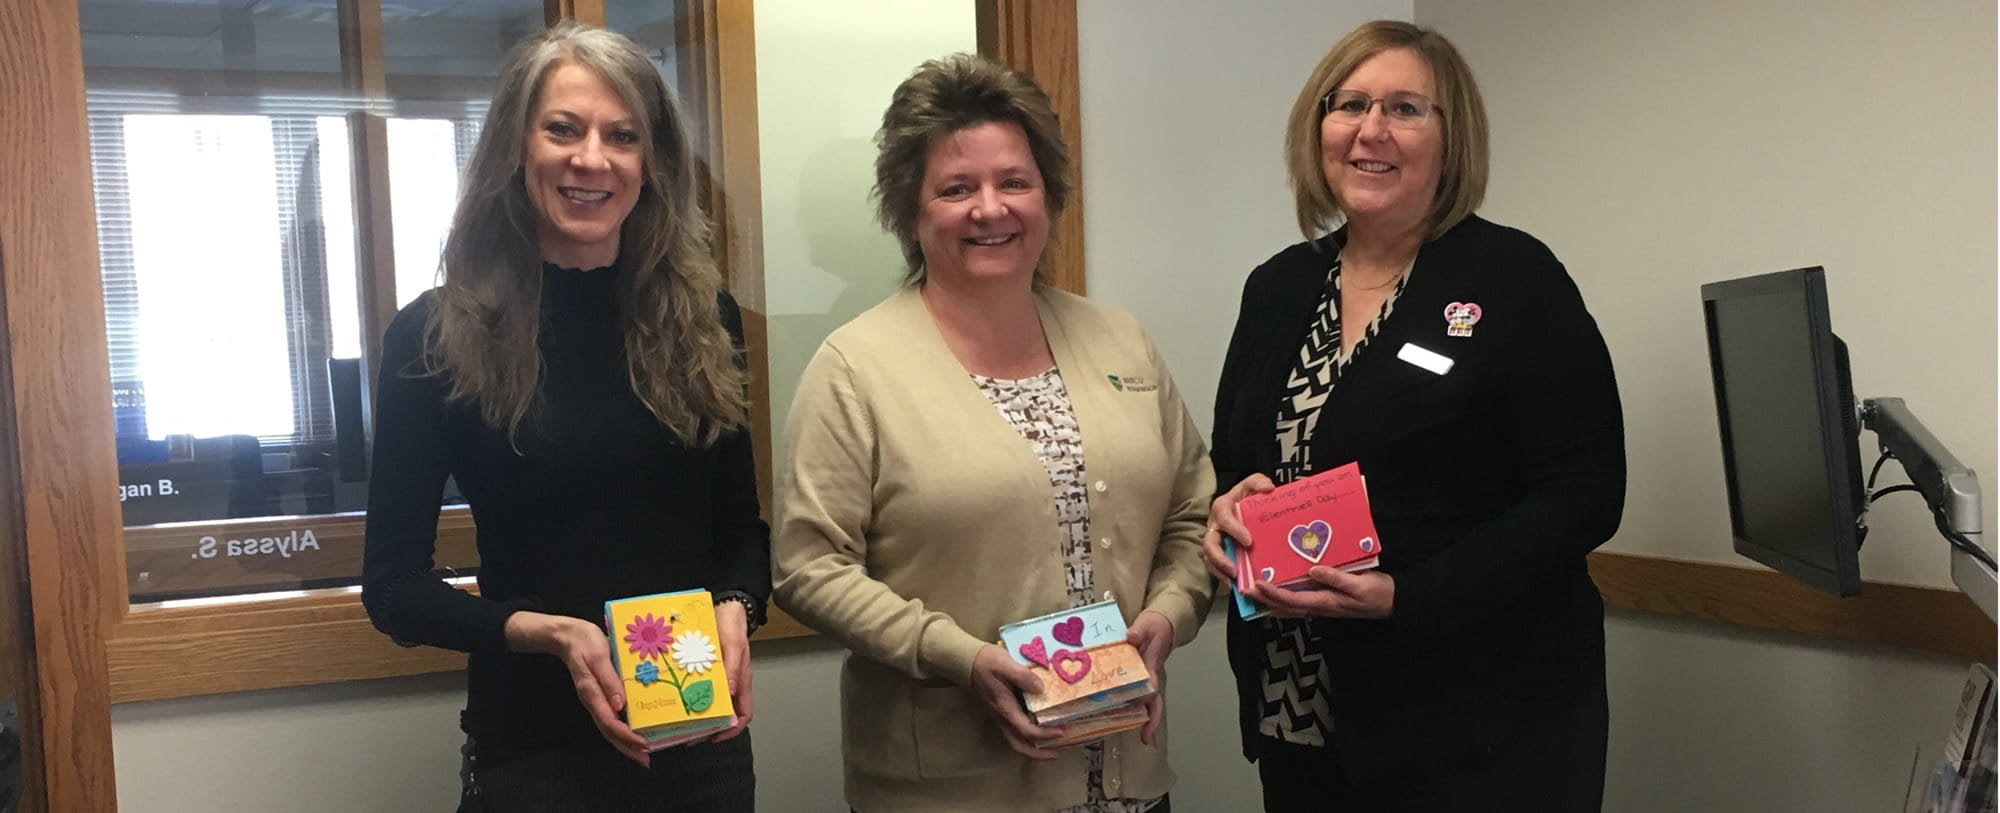 Black Hills FCU Employees Give Back in February 2019 Image